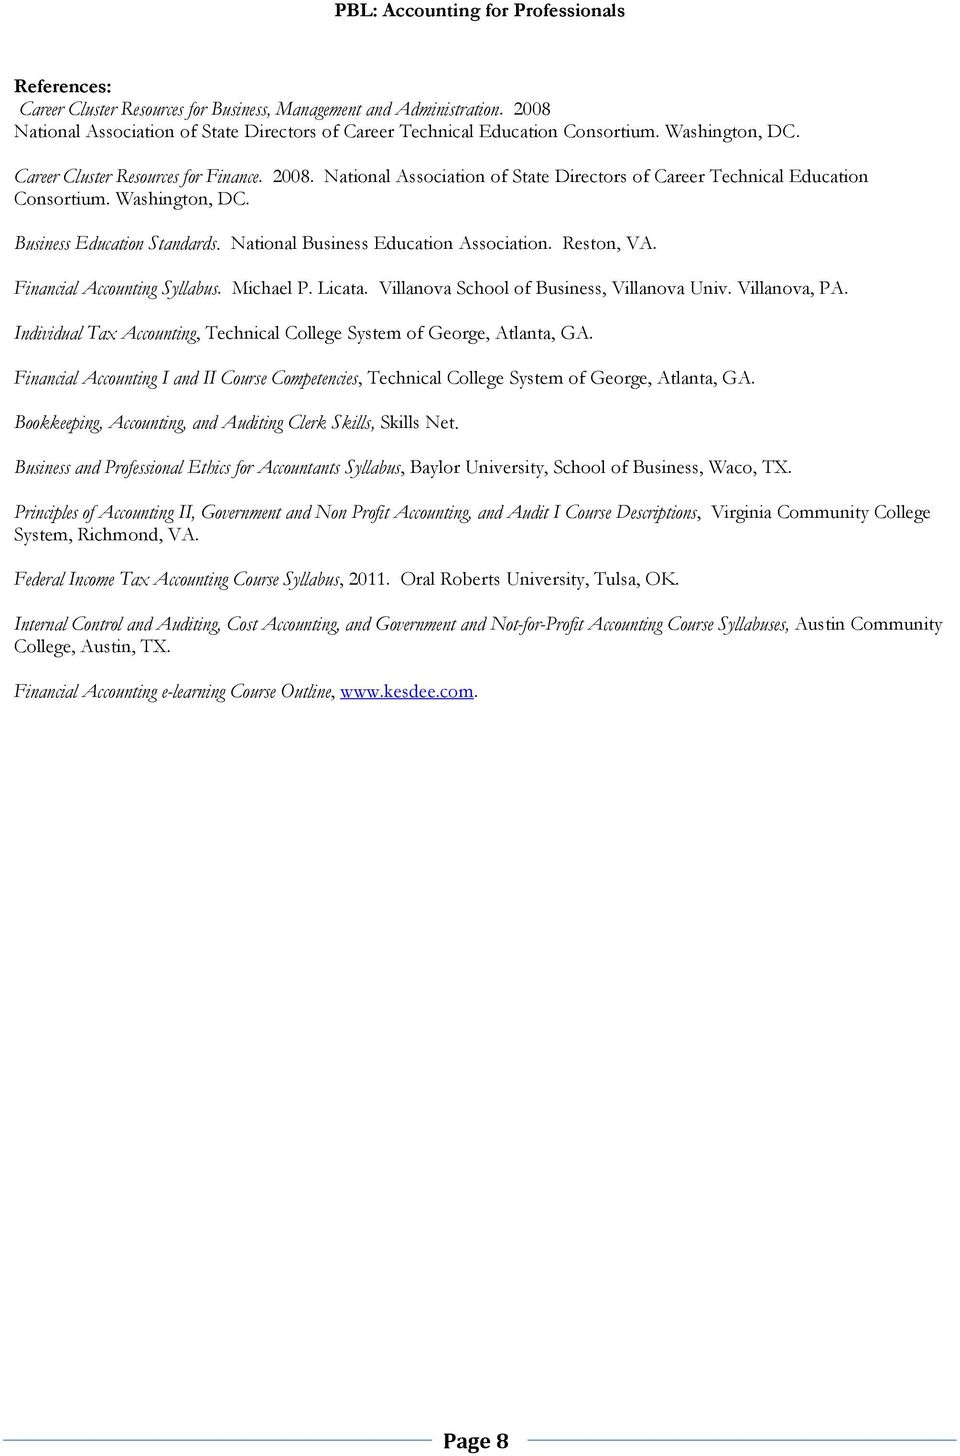 National Business Education Association. Reston, VA. Financial Accounting Syllabus. Michael P. Licata. Villanova School of Business, Villanova Univ. Villanova, PA.